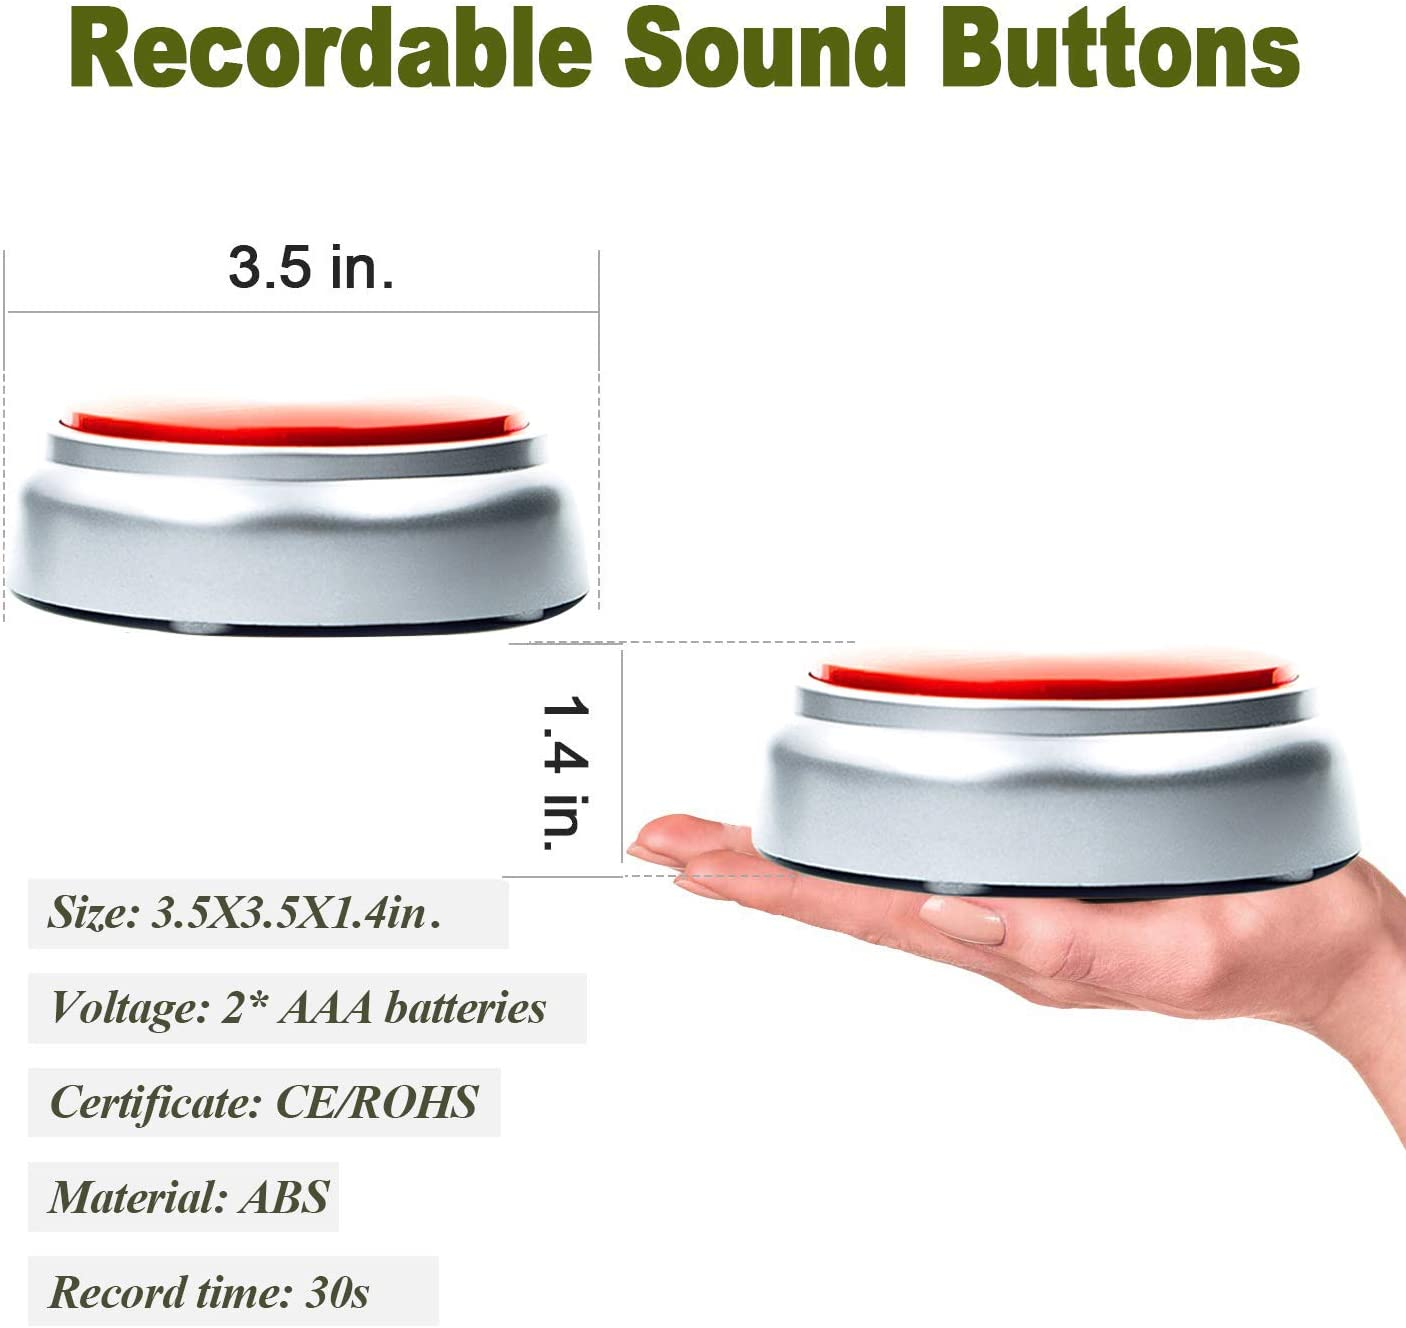 Neutral Sound Talking Button Record Sound Box Answer Buzzers 30 Seconds Recording Red and Silver